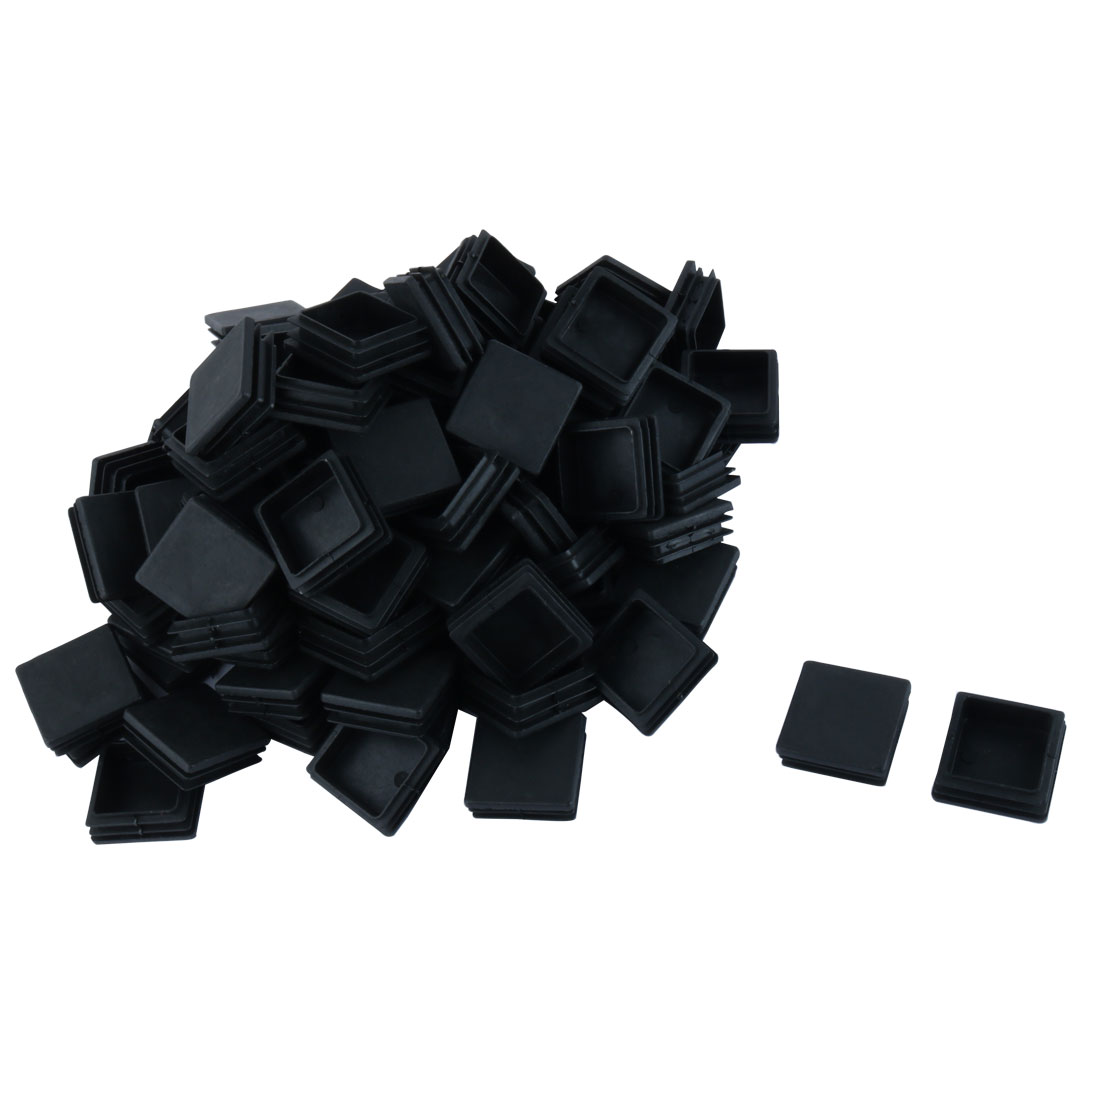 Plastic Blanking End Caps Square Tube Insert Black 38 x 38 x 15mm 100pcs